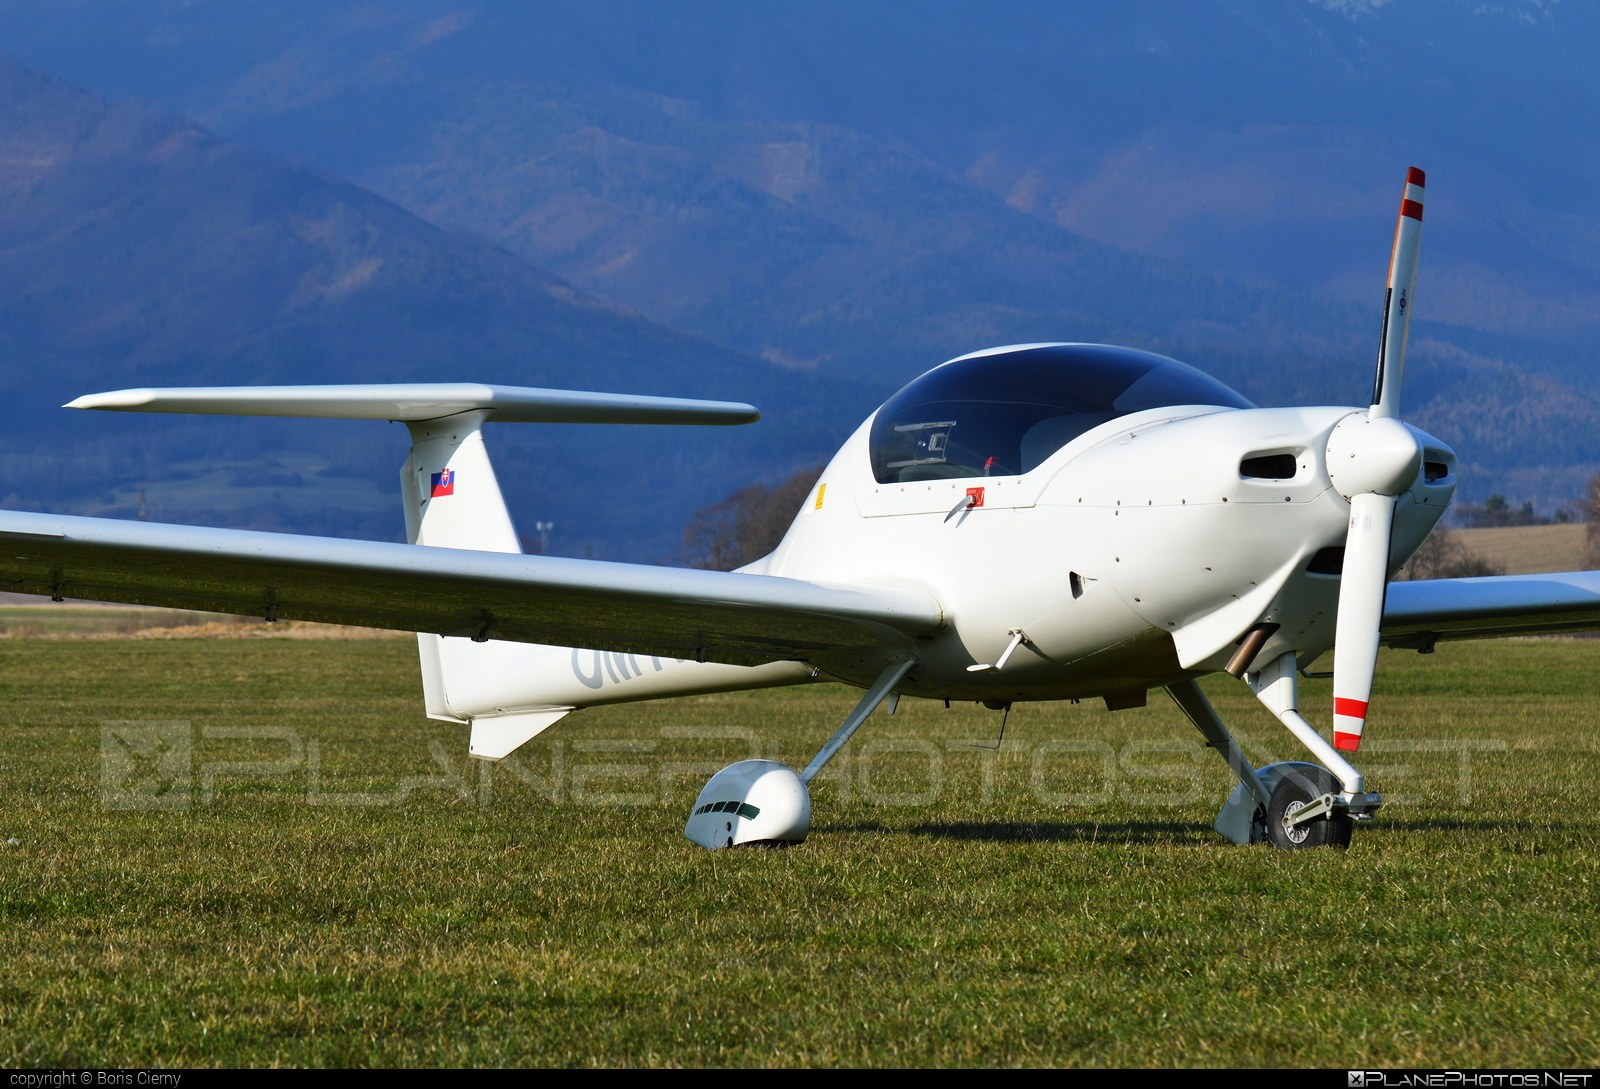 Diamond DA20-C1 Katana - OM-AFH operated by Aerofatra #da20 #da20c1 #da20c1katana #da20katana #diamond